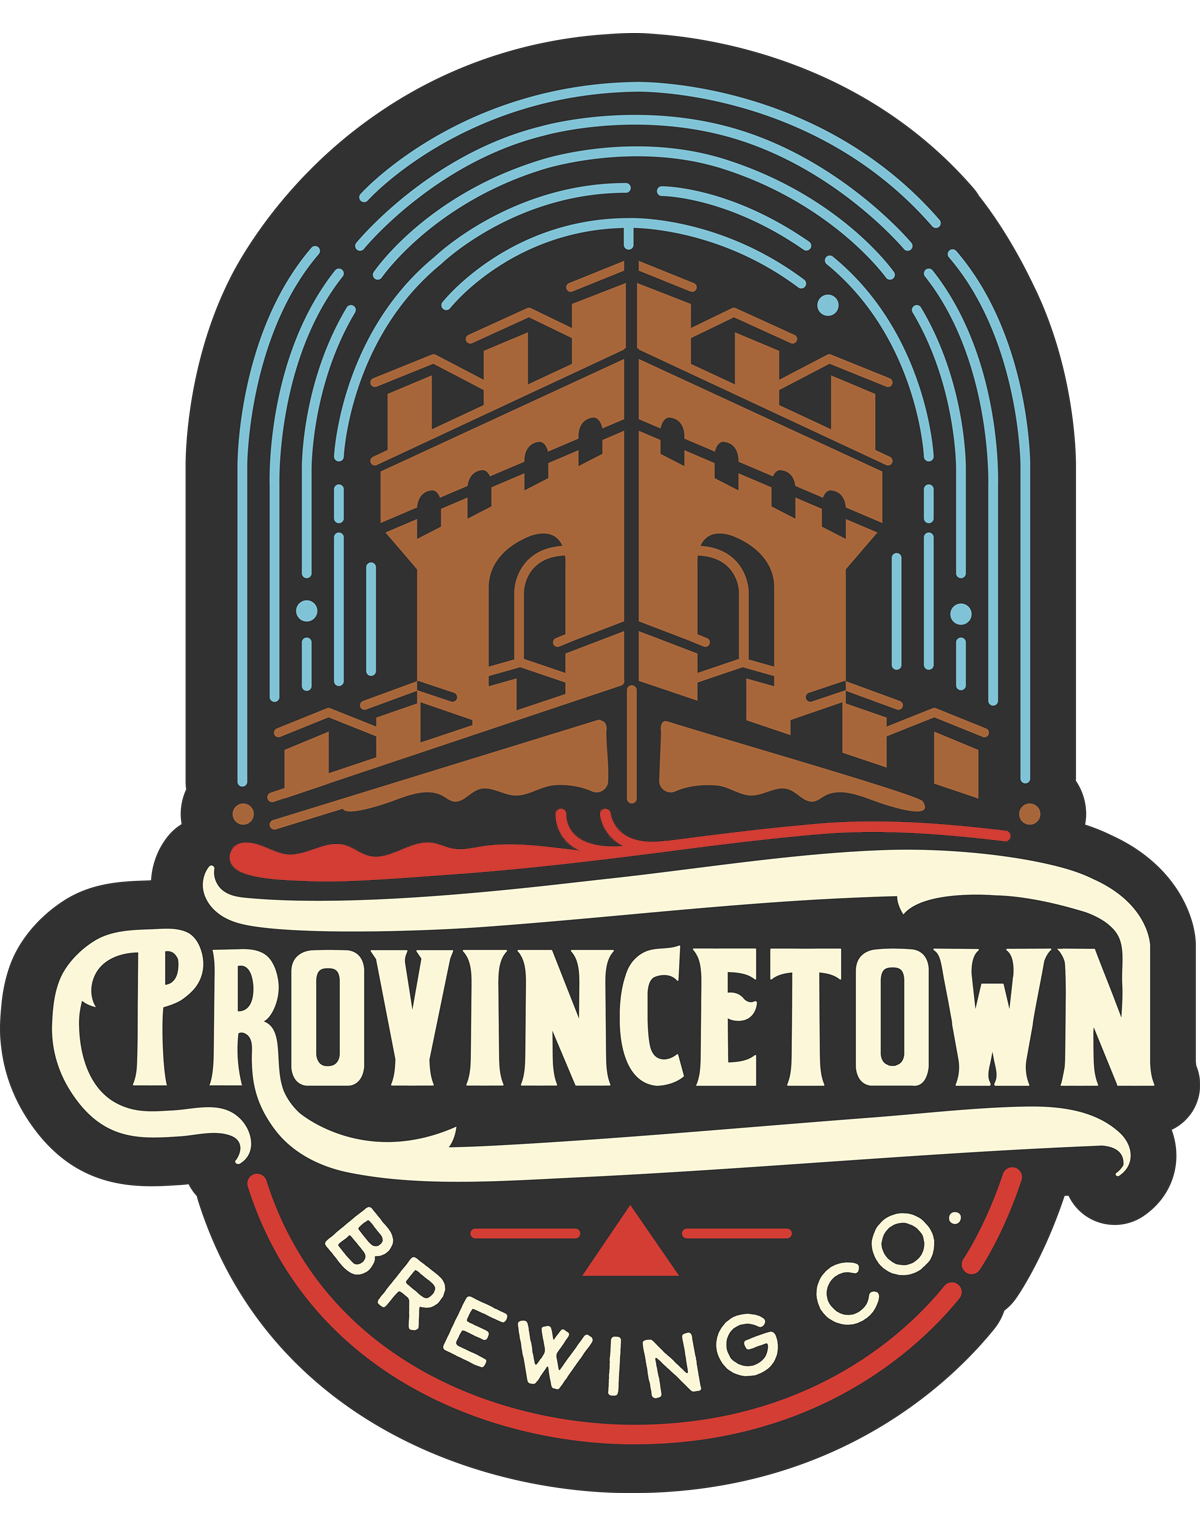 Provincetown Brewing Company